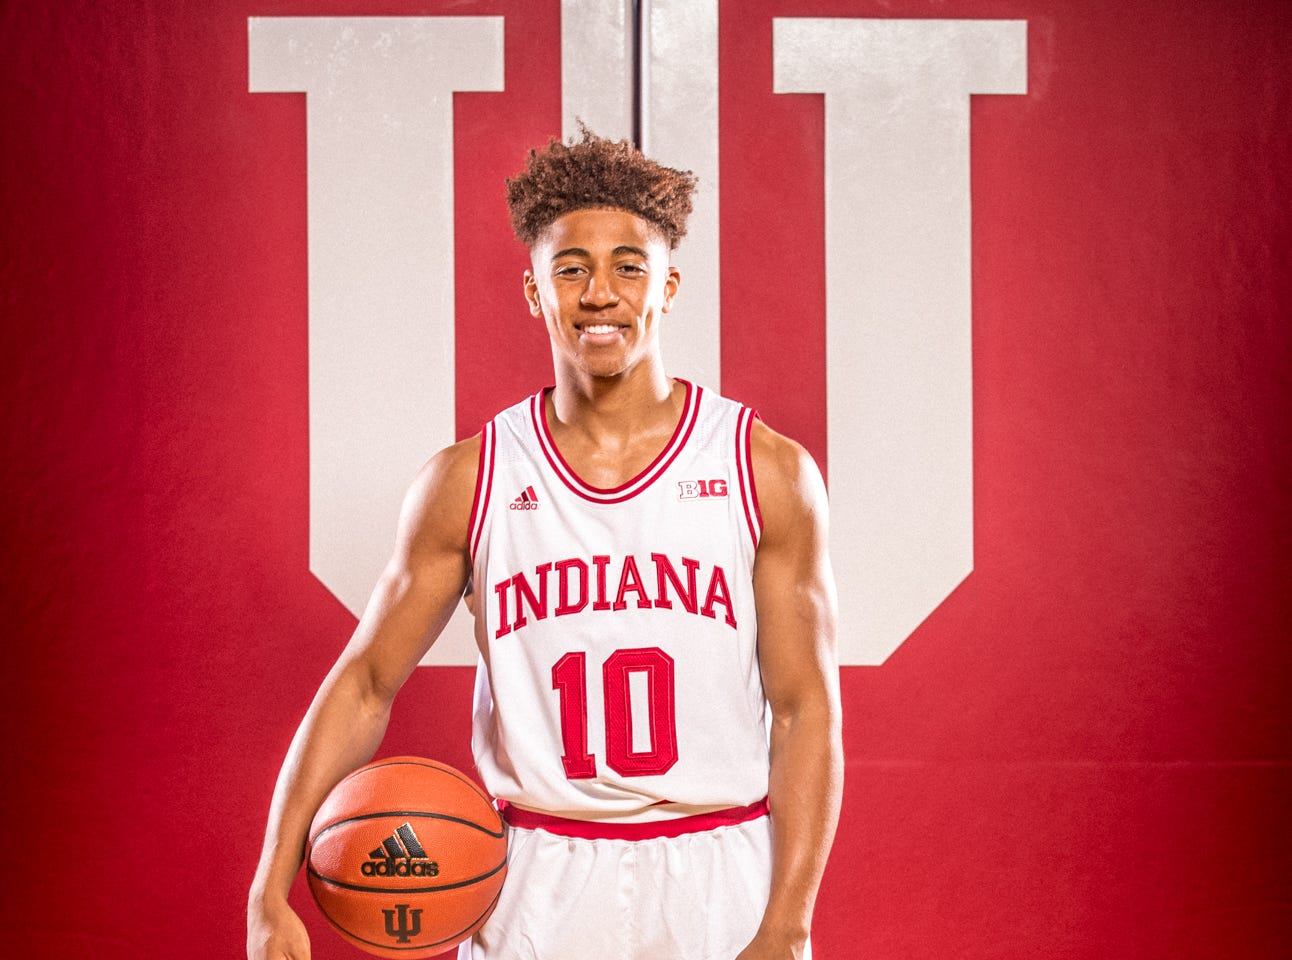 Rob Phinisee is photographed during Indiana University Media Day at Simon Skjodt Assembly Hall on Wednesday, Sept. 26, 2018.